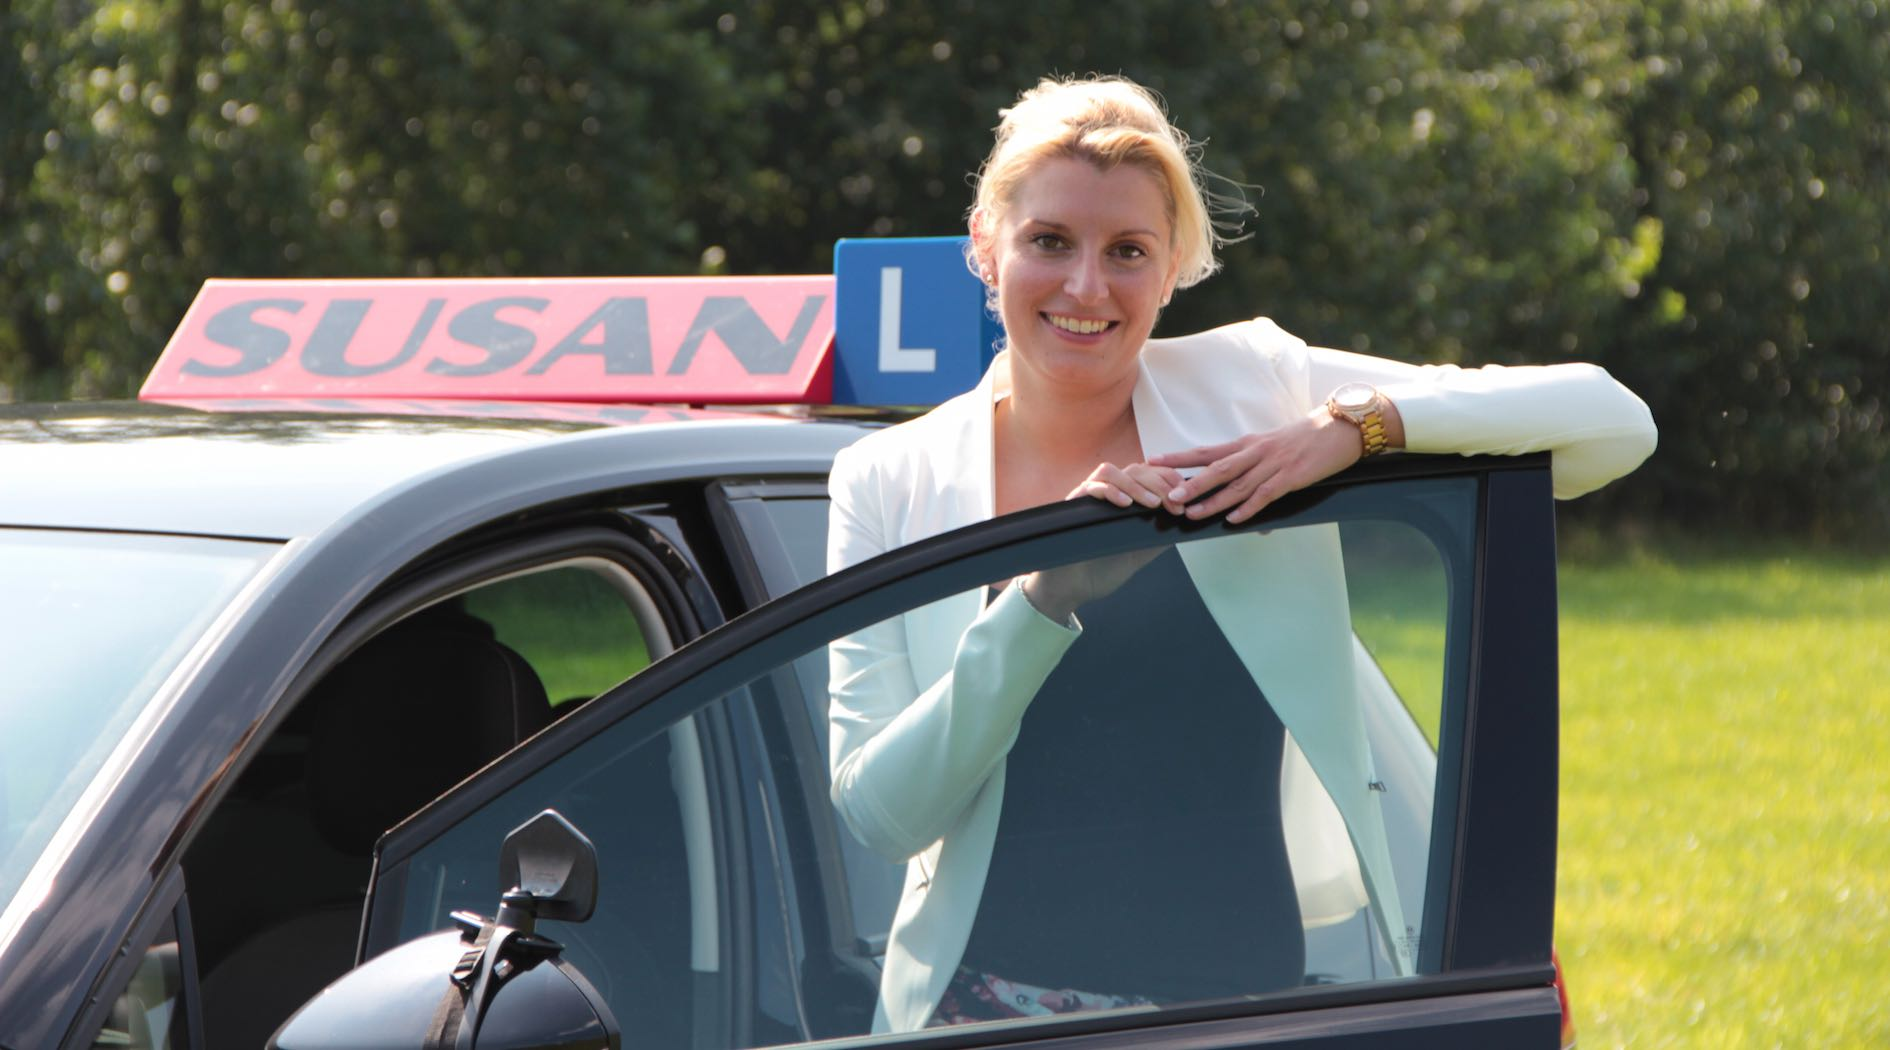 rijles instructrice Susan